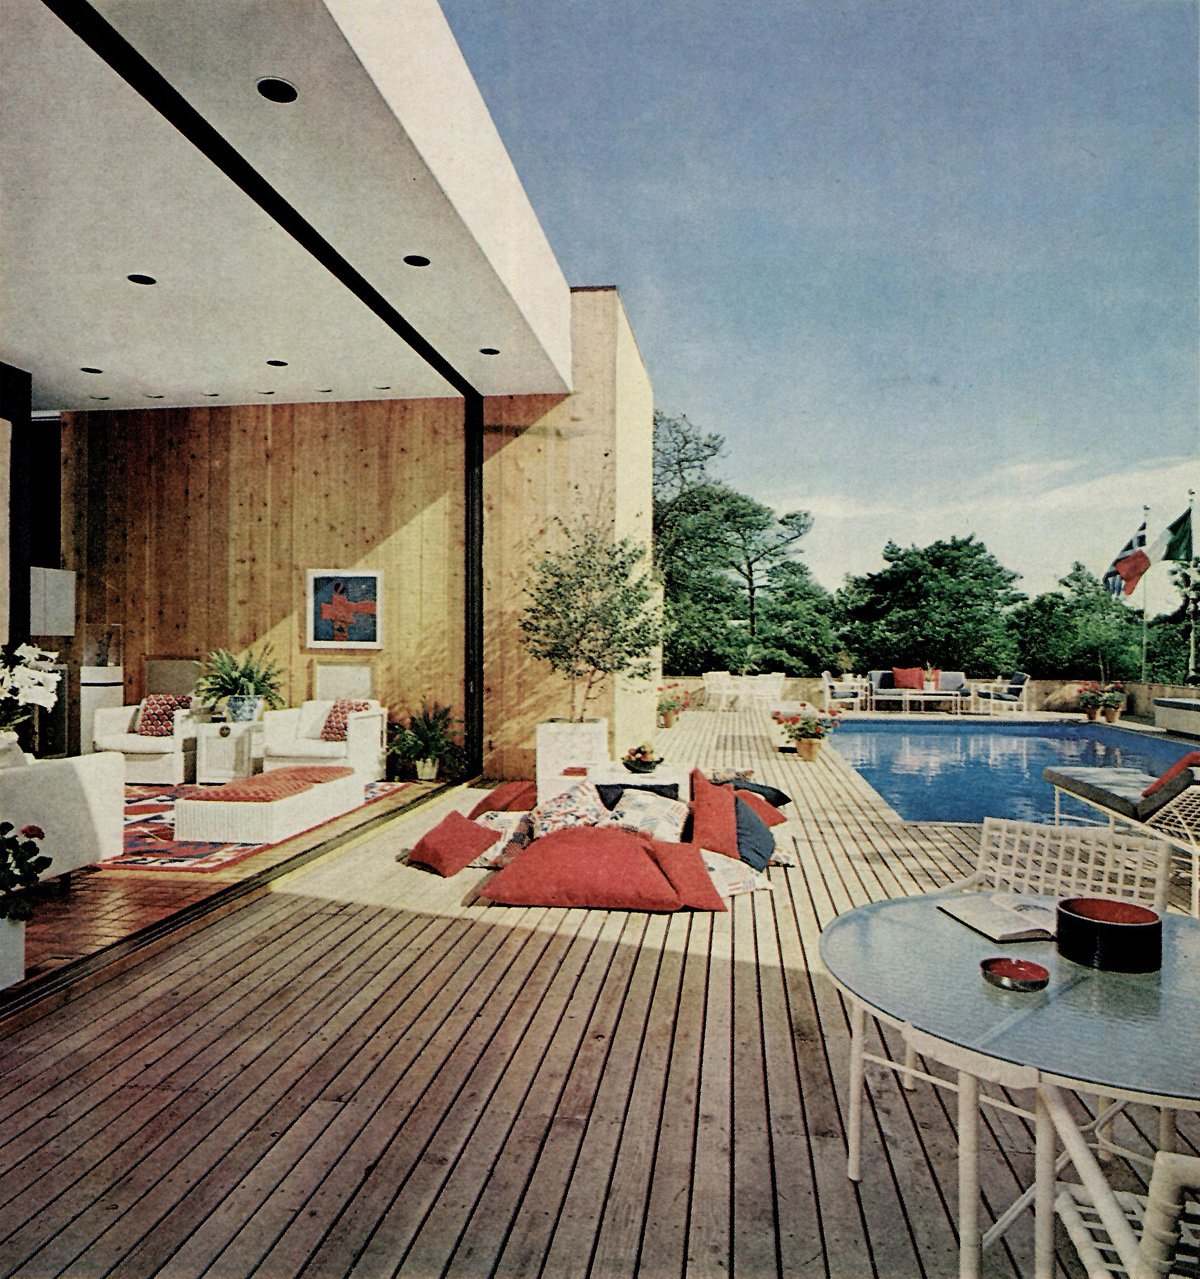 616 Shore Walk by Marcel Bretos (1971).  Photo 5 of 8 in Must-See Modern Beach Houses on Fire Island Tour